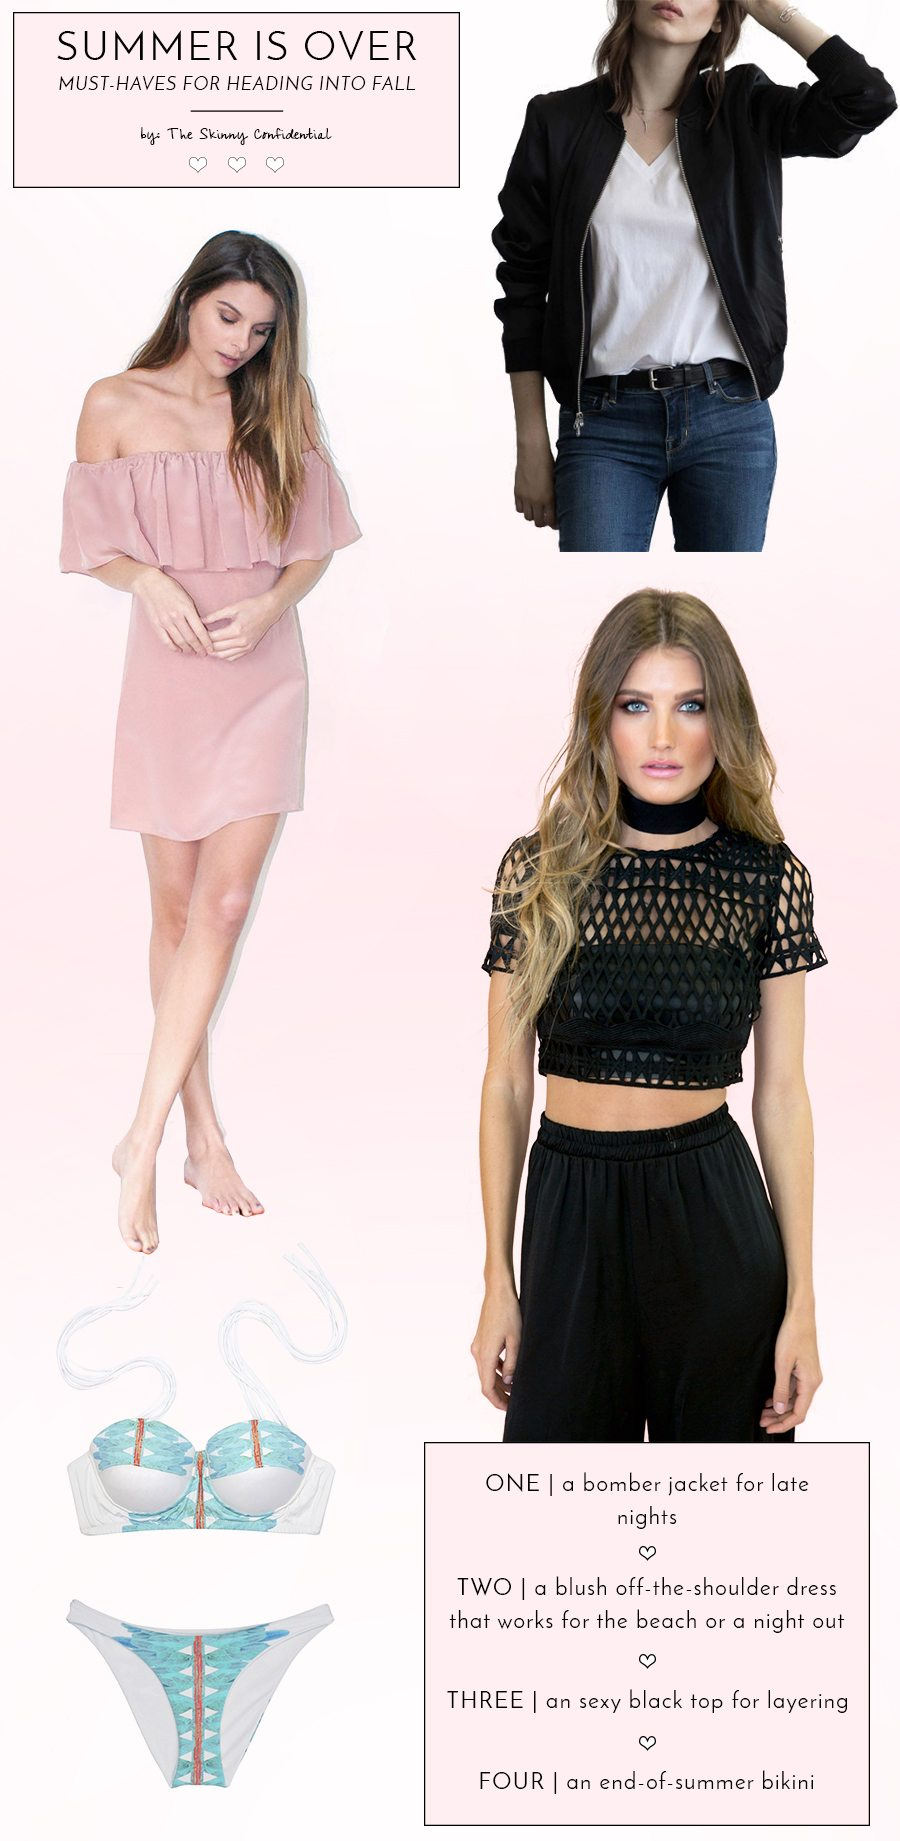 summer is over must haves   by the skinny confidential